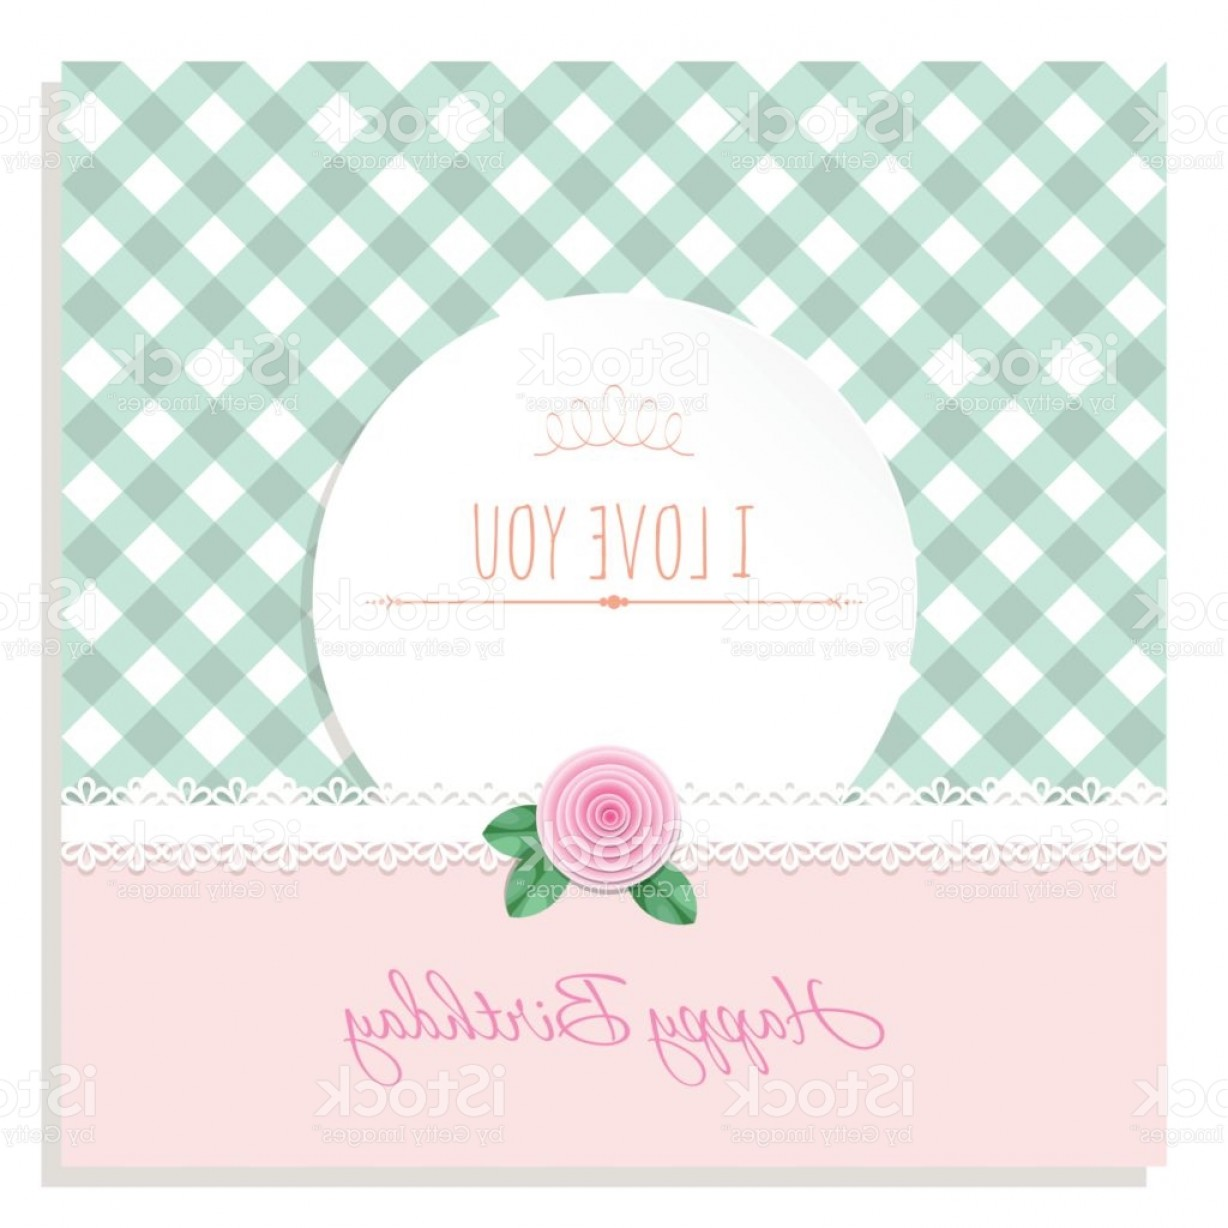 Birthday Card Vector Frame Designs: Birthday Greeting Card Template Round Frame On Plaid Background Shabby Chic Design Gm